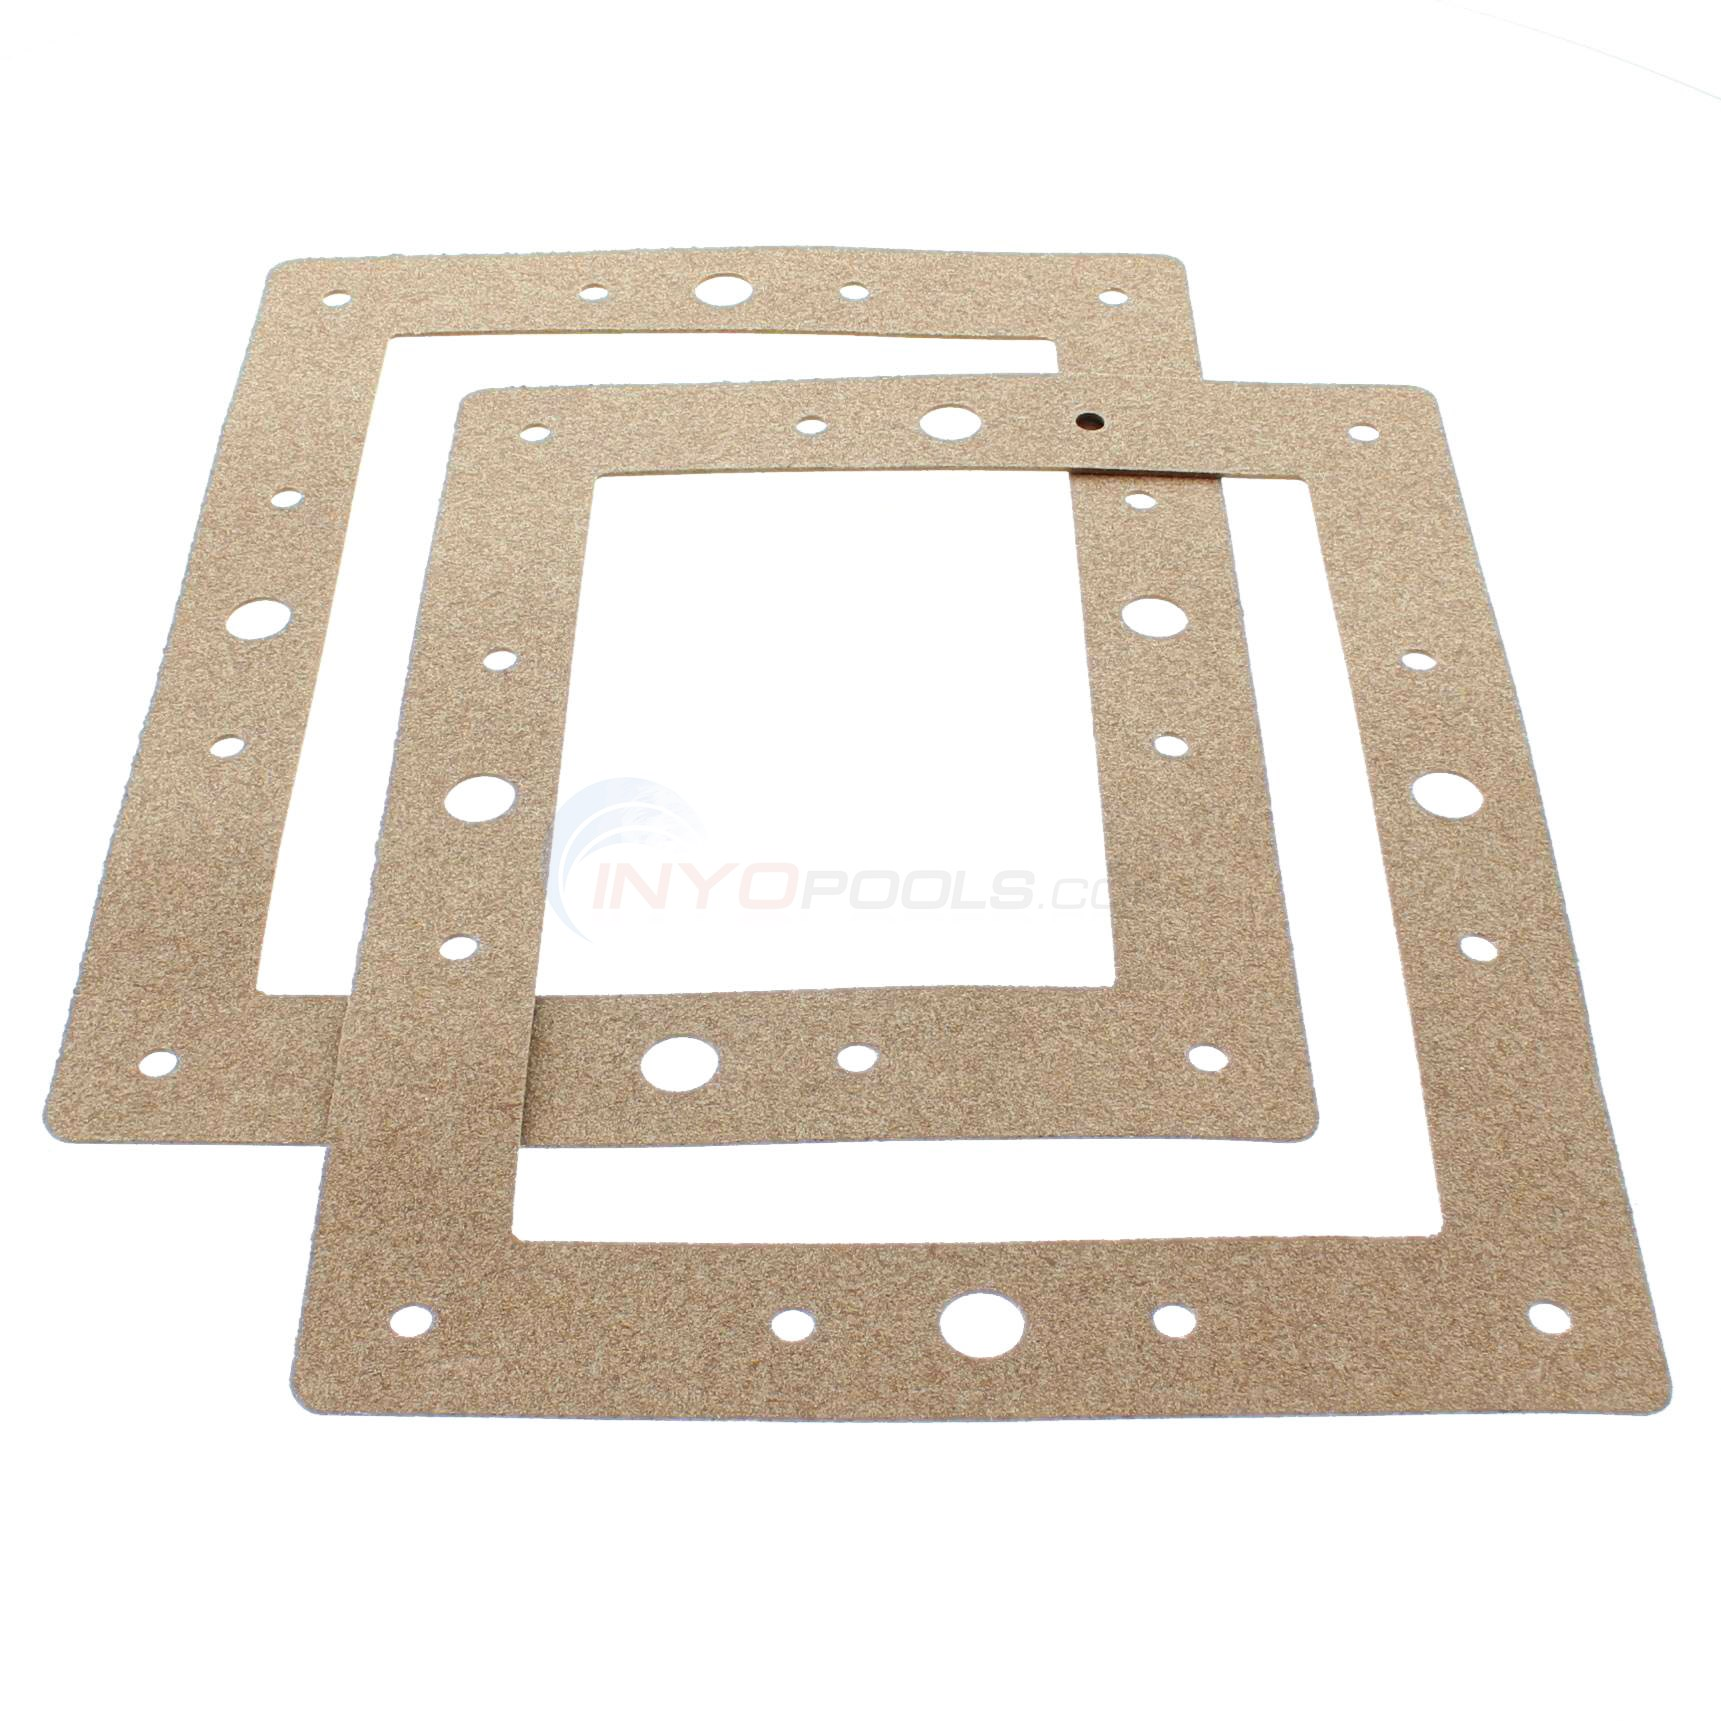 GASKET, 12 HOLE FACE PLATE (HAYSP-1084-B)